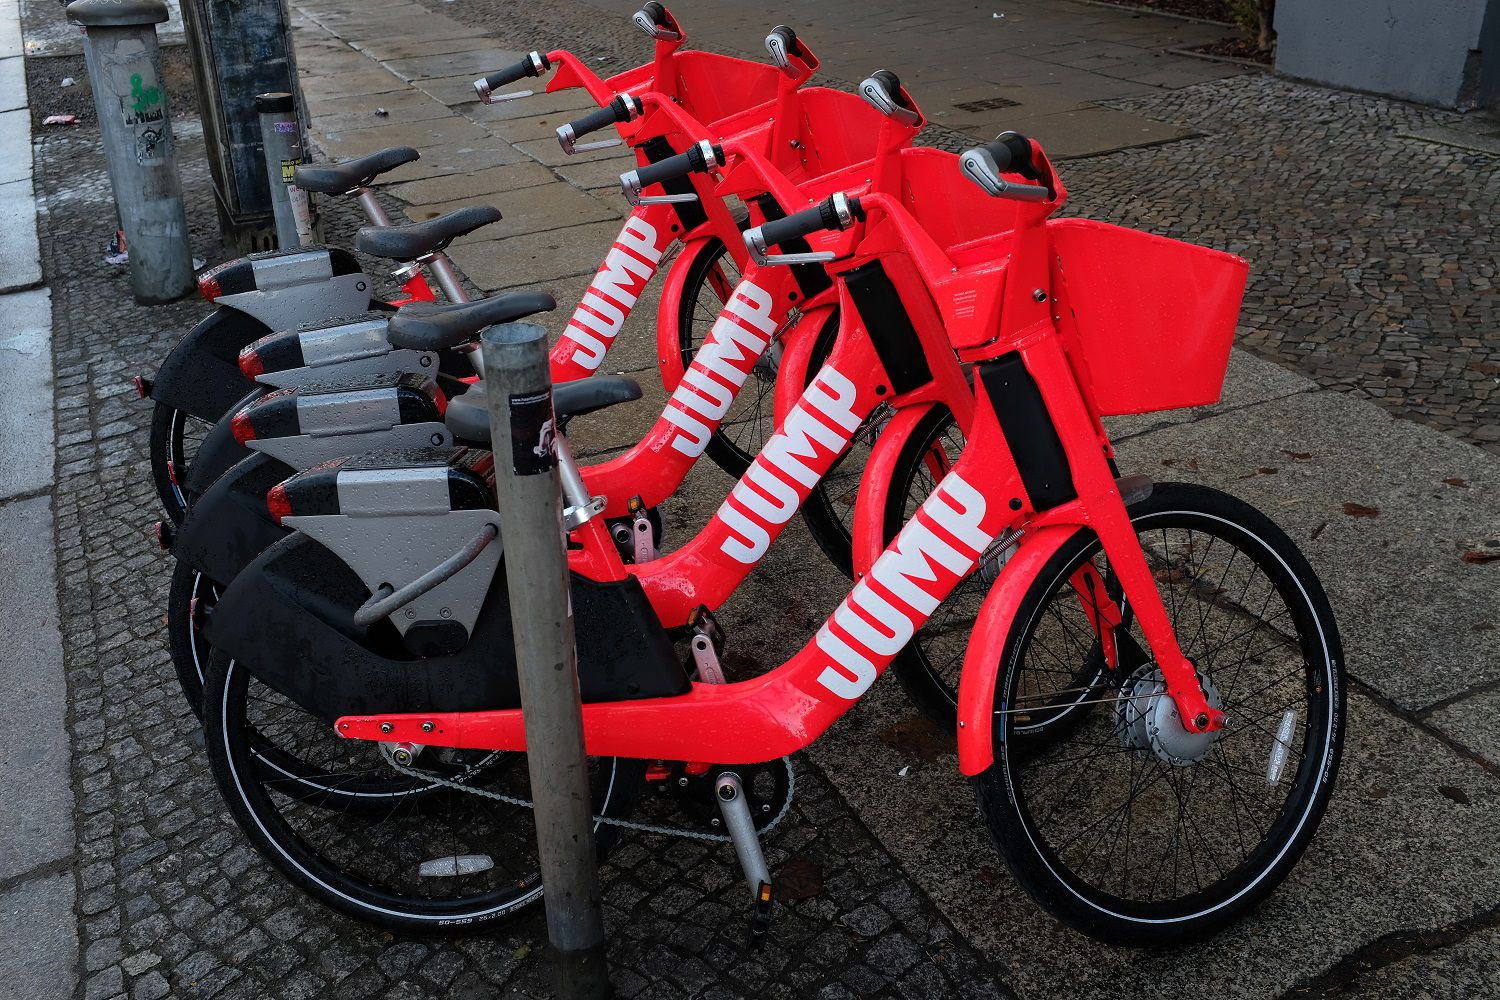 Uber Jump A Quick Guide To Uber S New Scooter And Bike Share